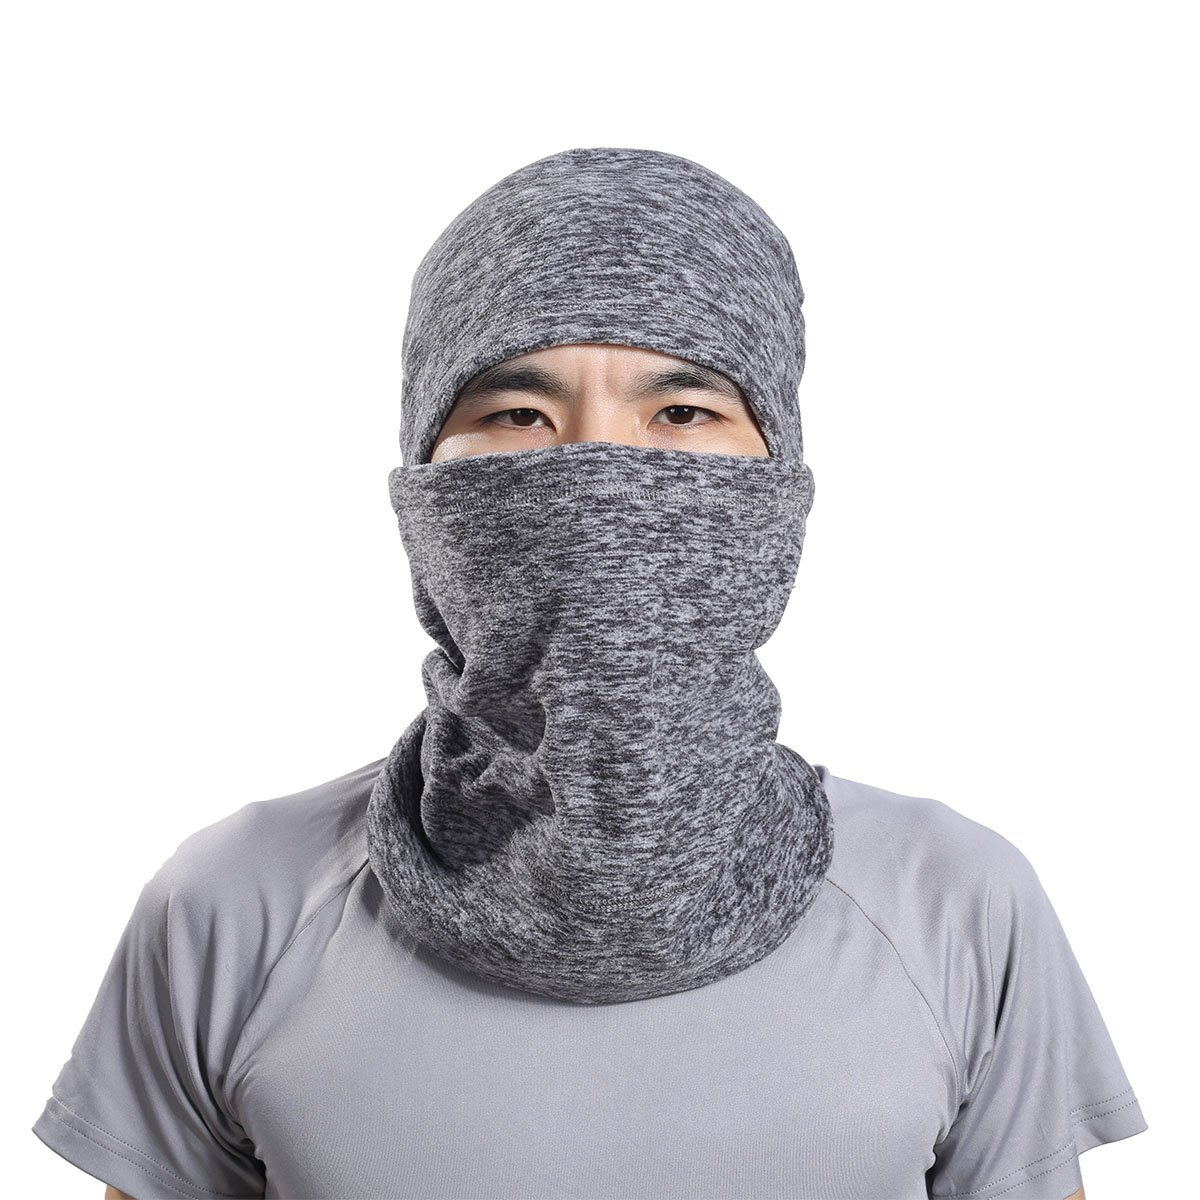 Call Of Duty 10 Cod Ghosts Logan Balaclava Ski Skull Hood: Masks : Online Shopping For Clothing, Shoes, Jewelry, Pet